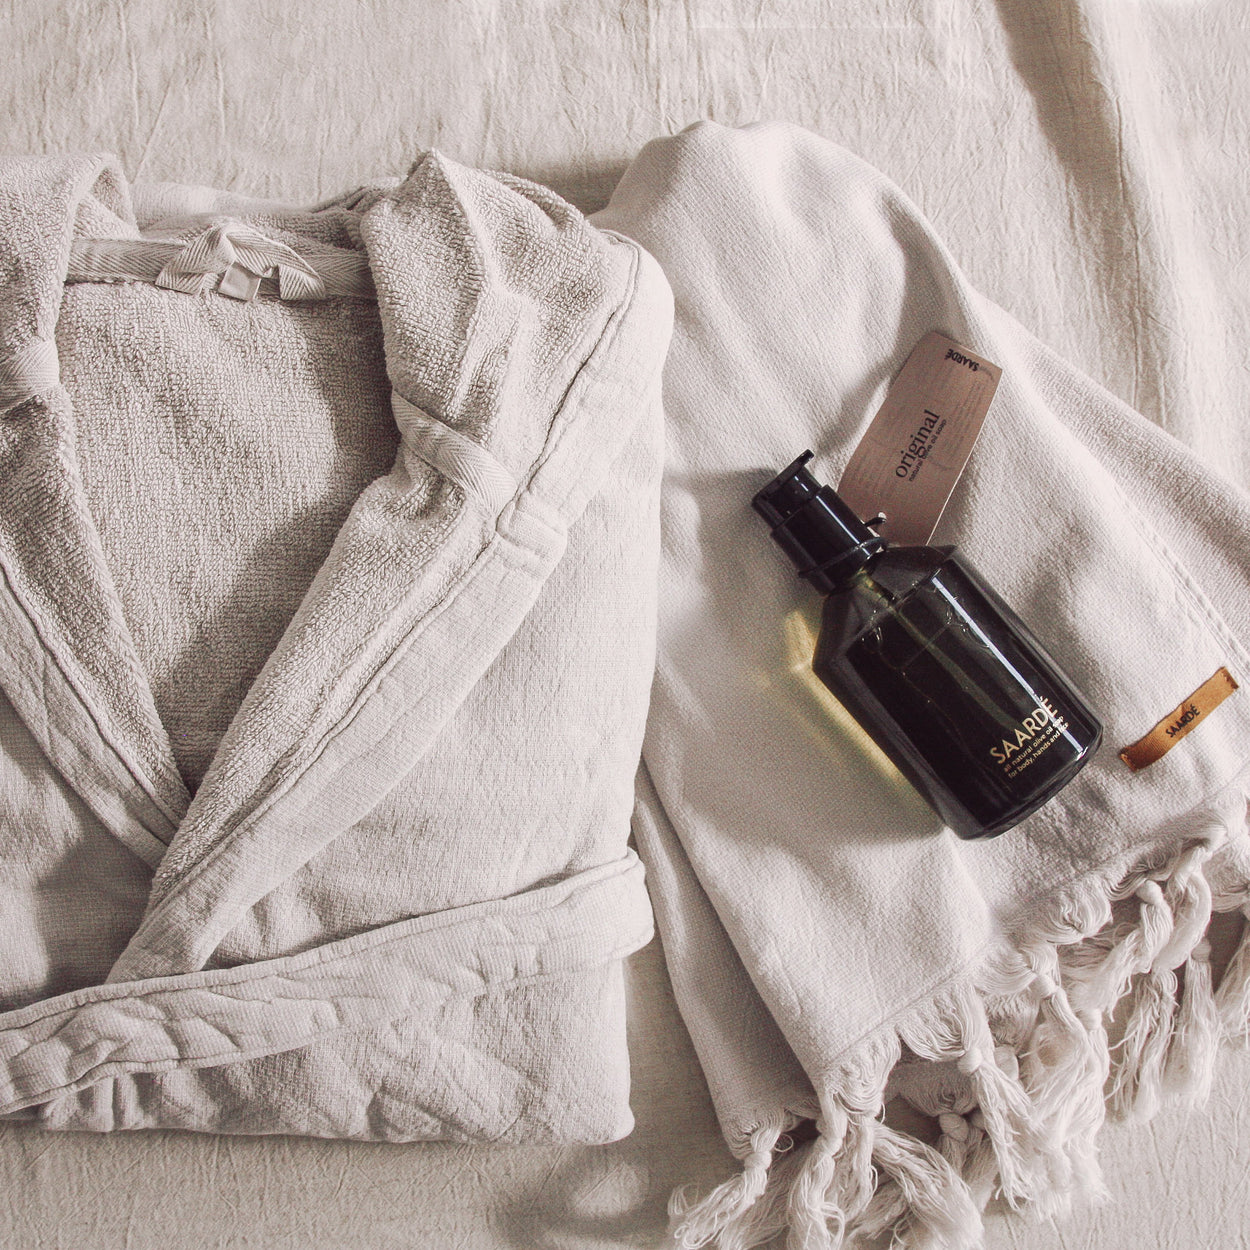 Clay coloured hooded cotton robe with matching hand towel and liquid wash in a glass bottle